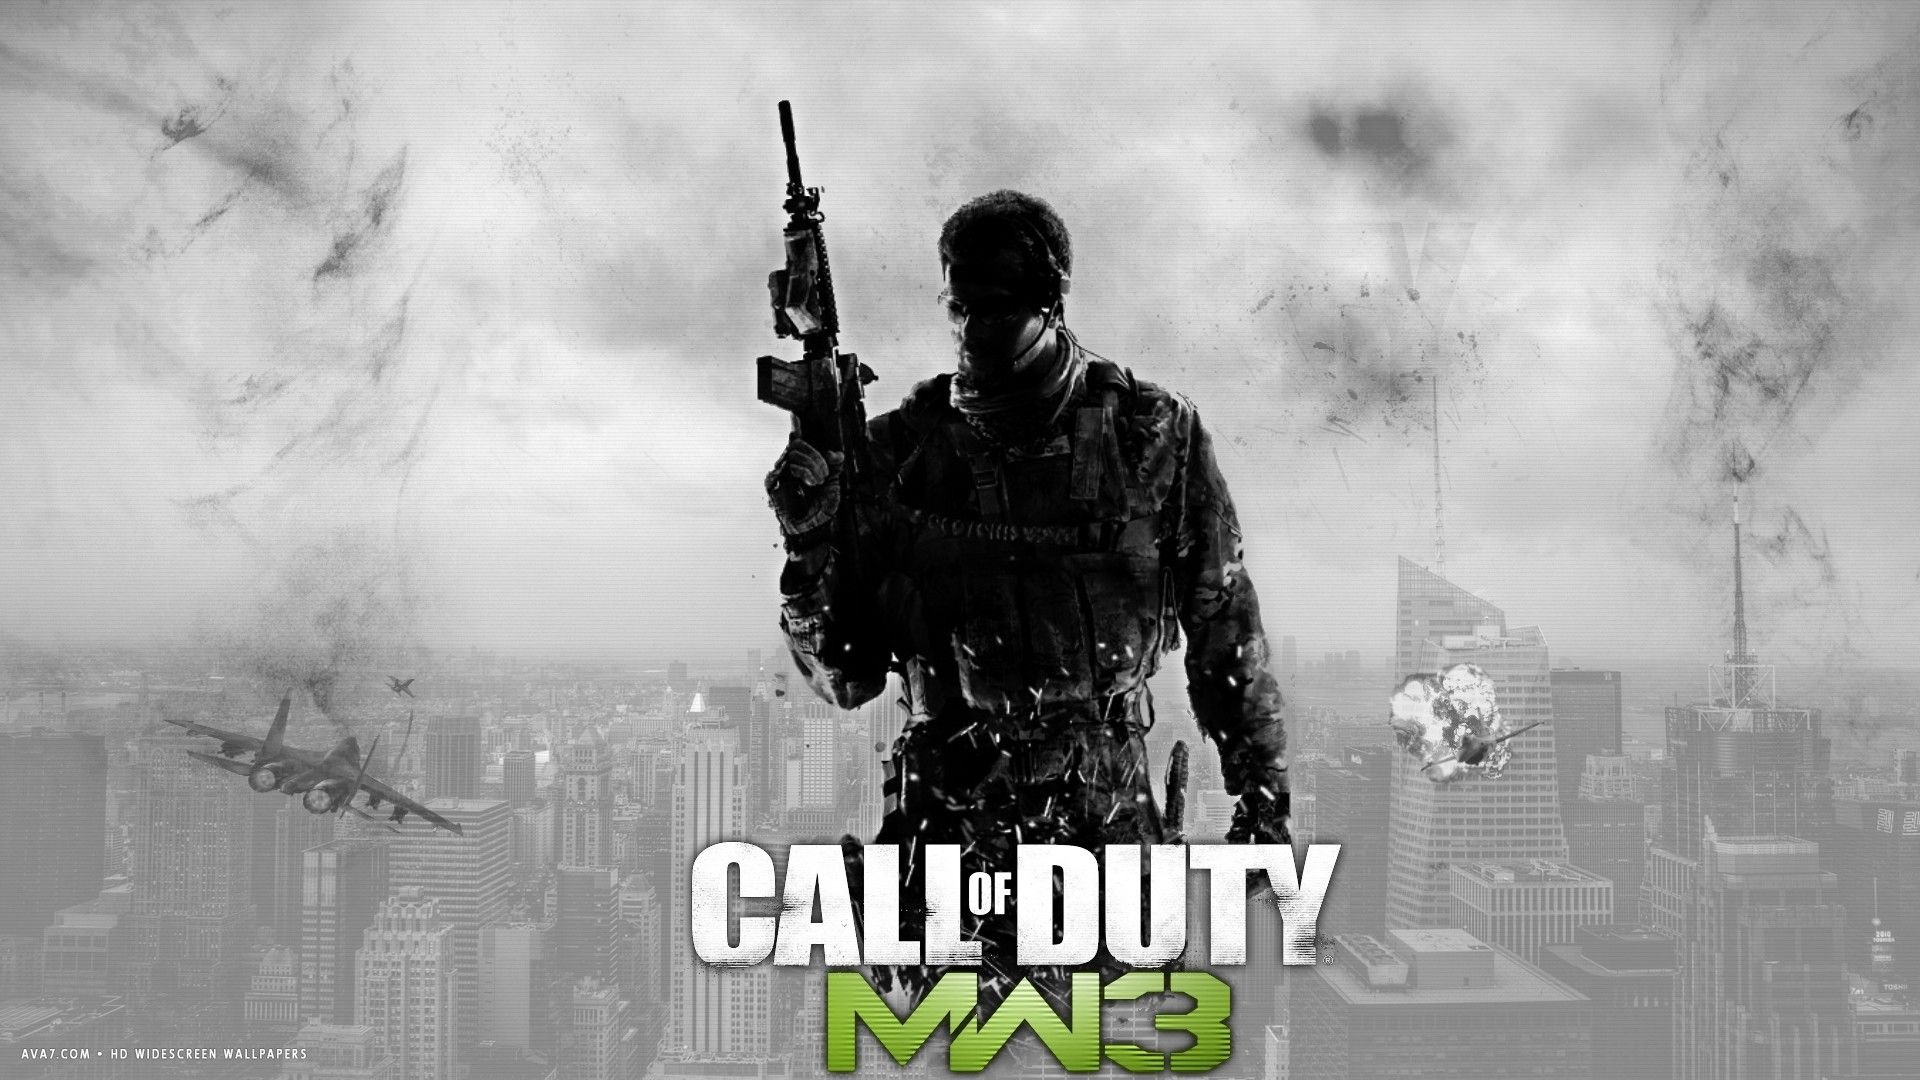 Call of duty modern warfare 3 wallpapers top free call - Mw3 wallpaper ...